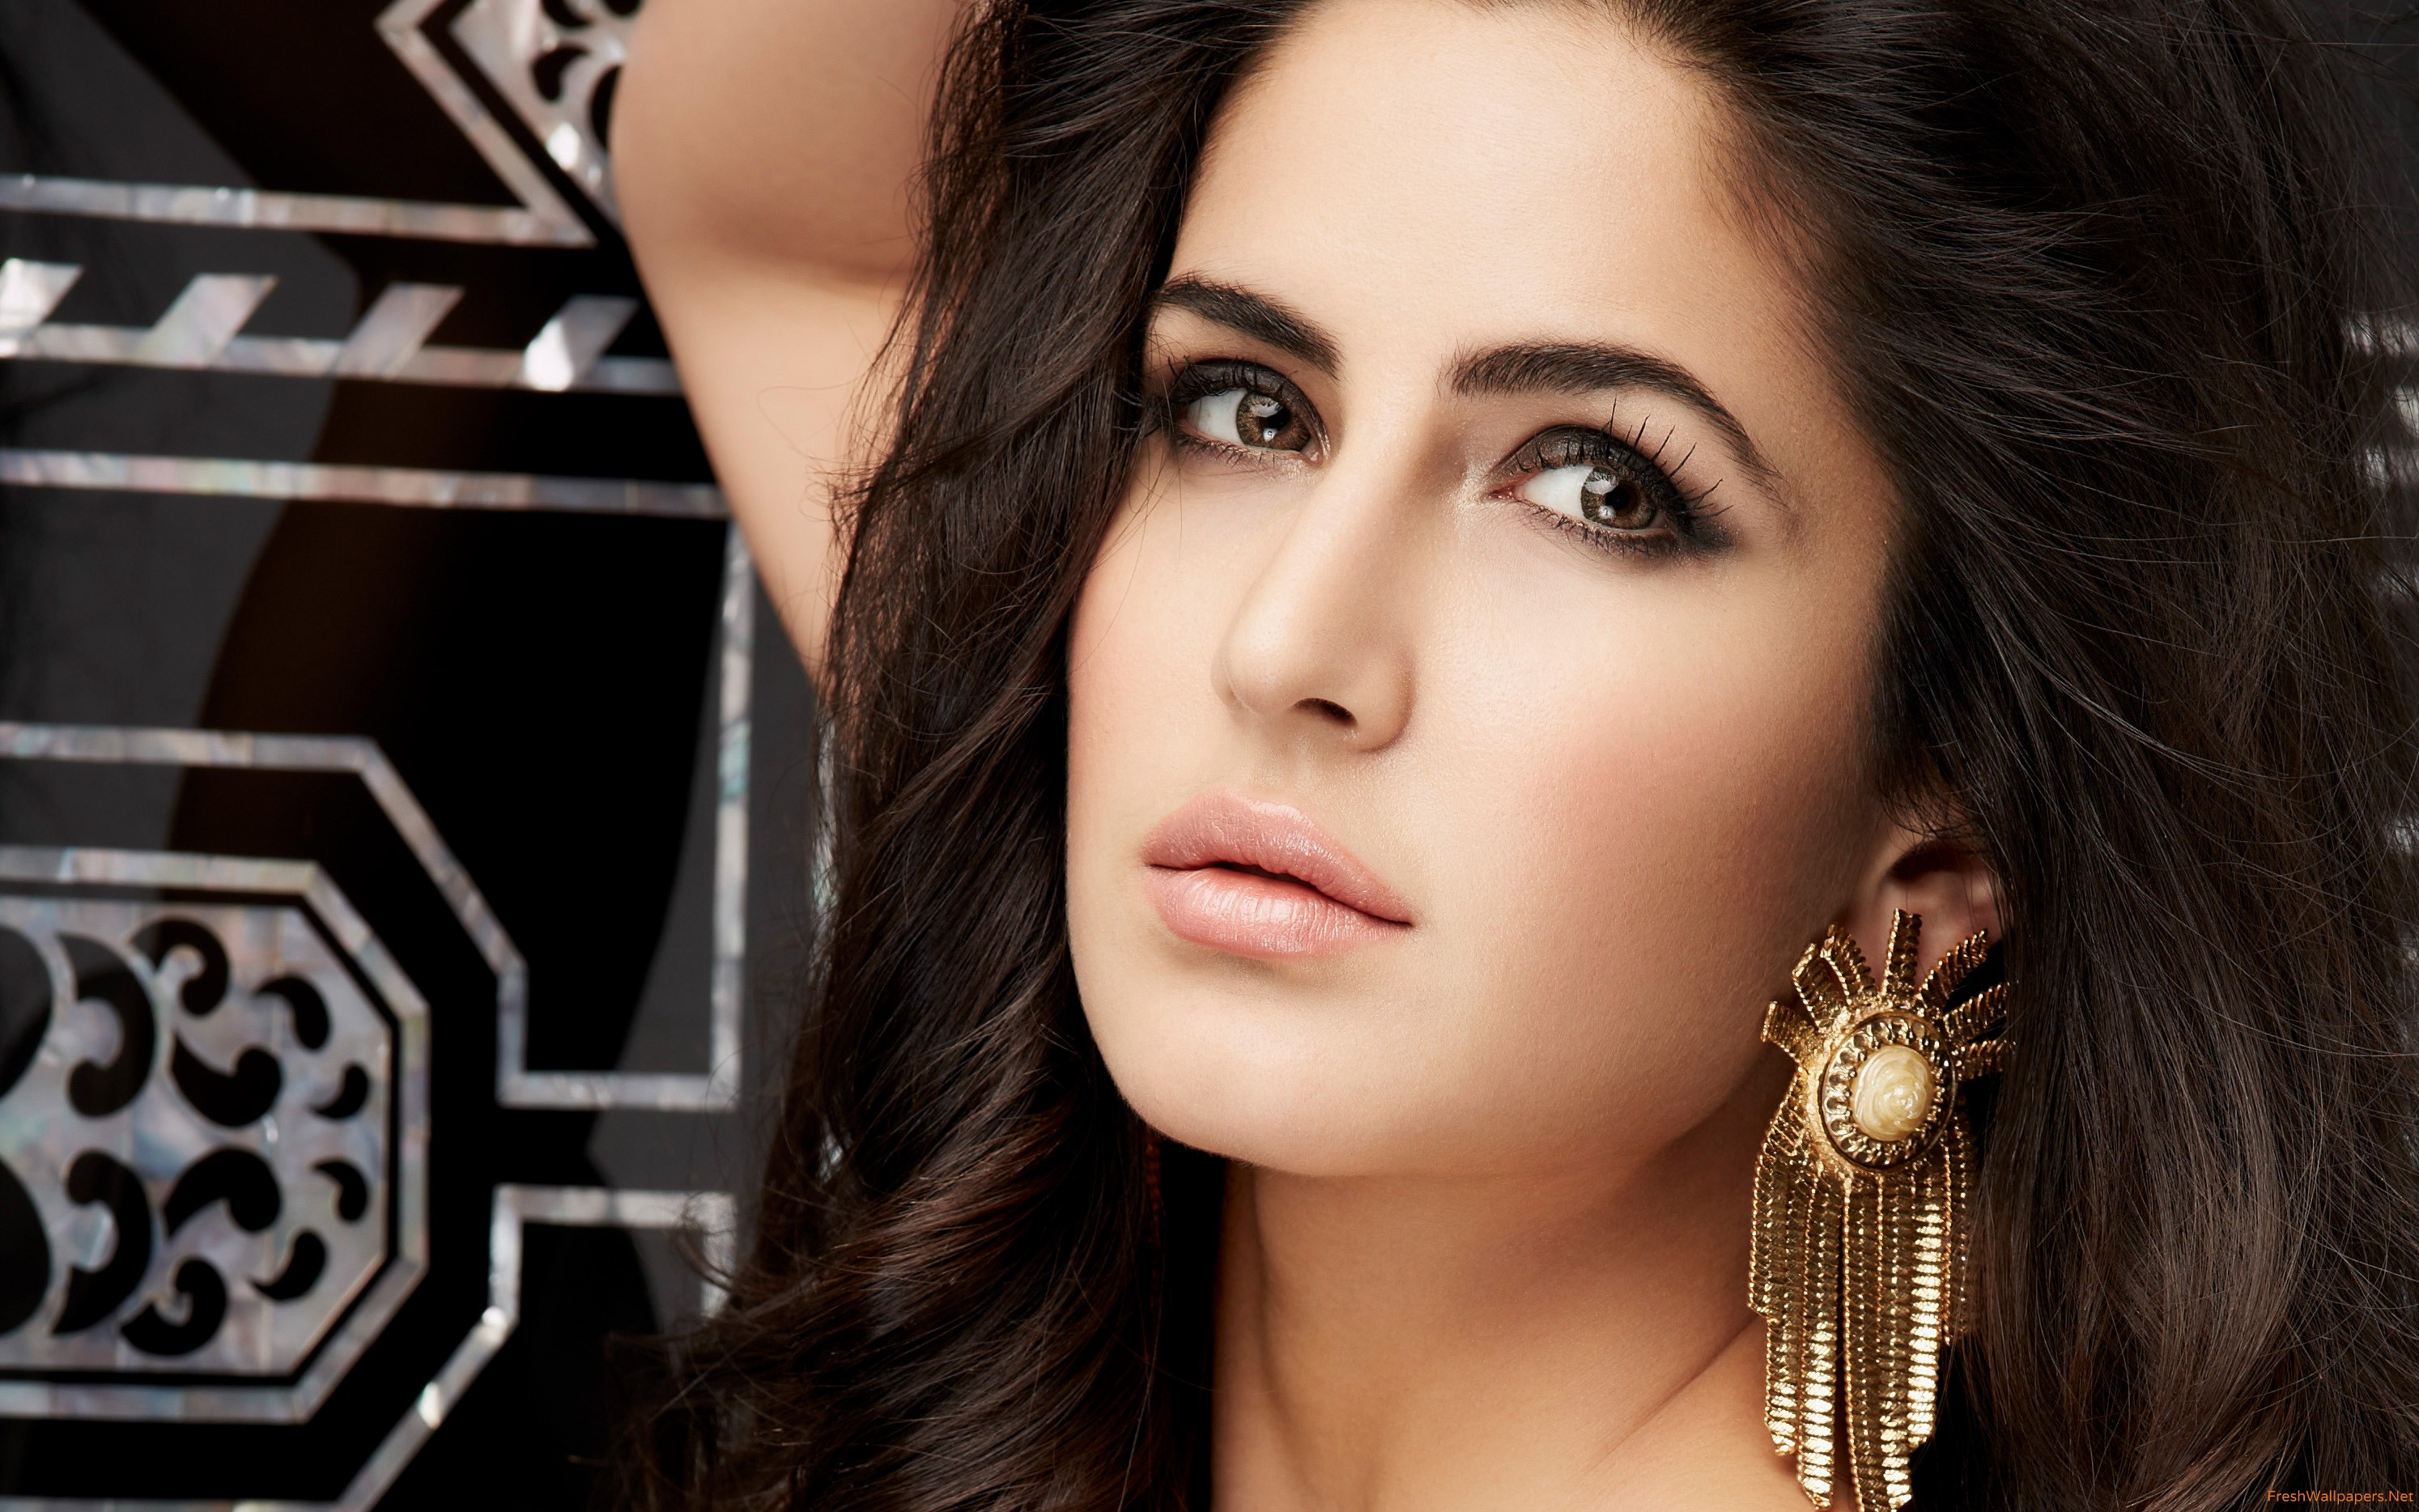 Katrina Kaif Wallpaper Katrina Kaif Image Of 2018 522400